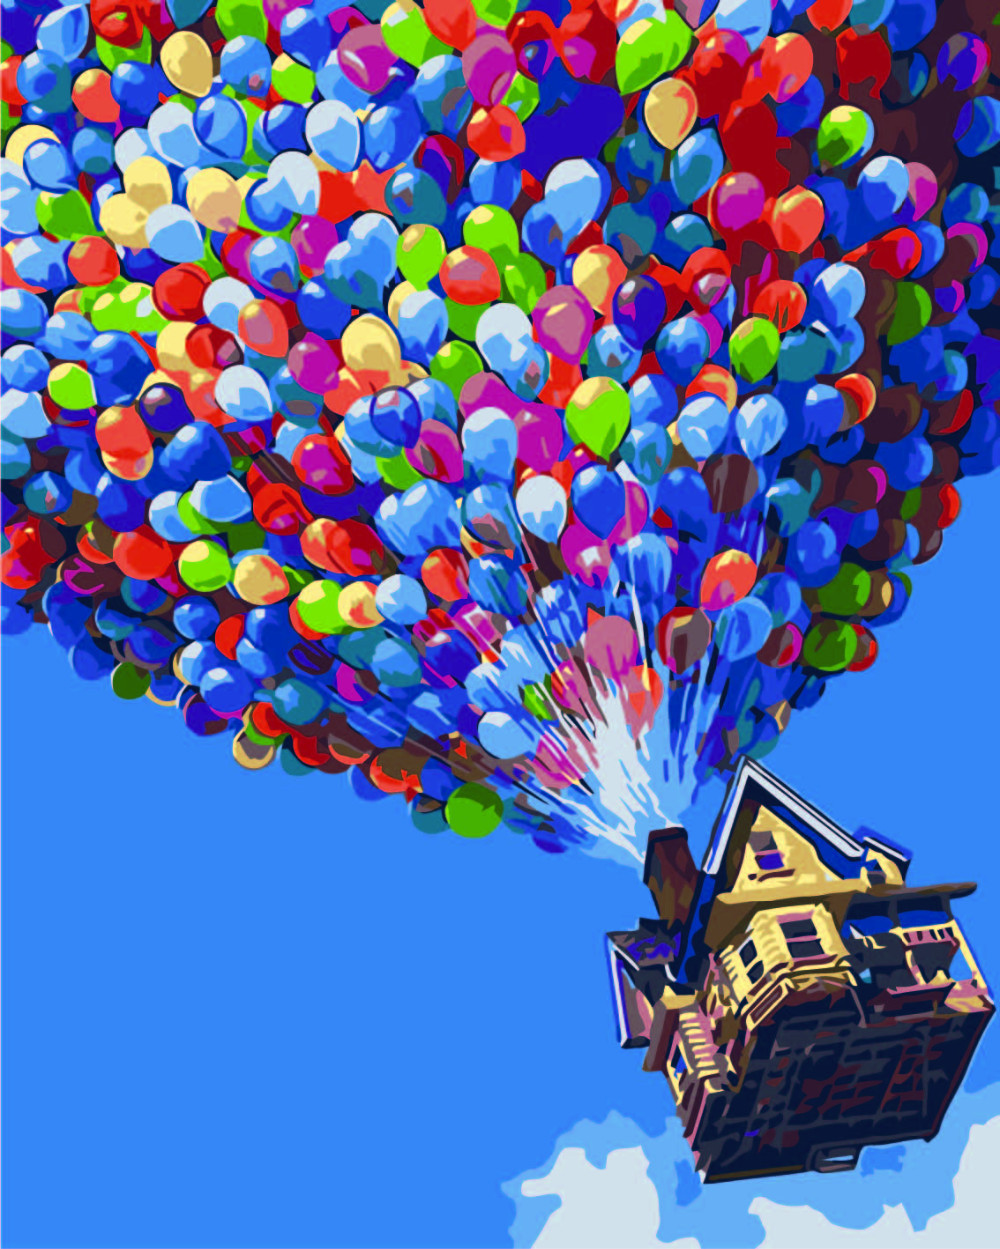 up movie balloon house art